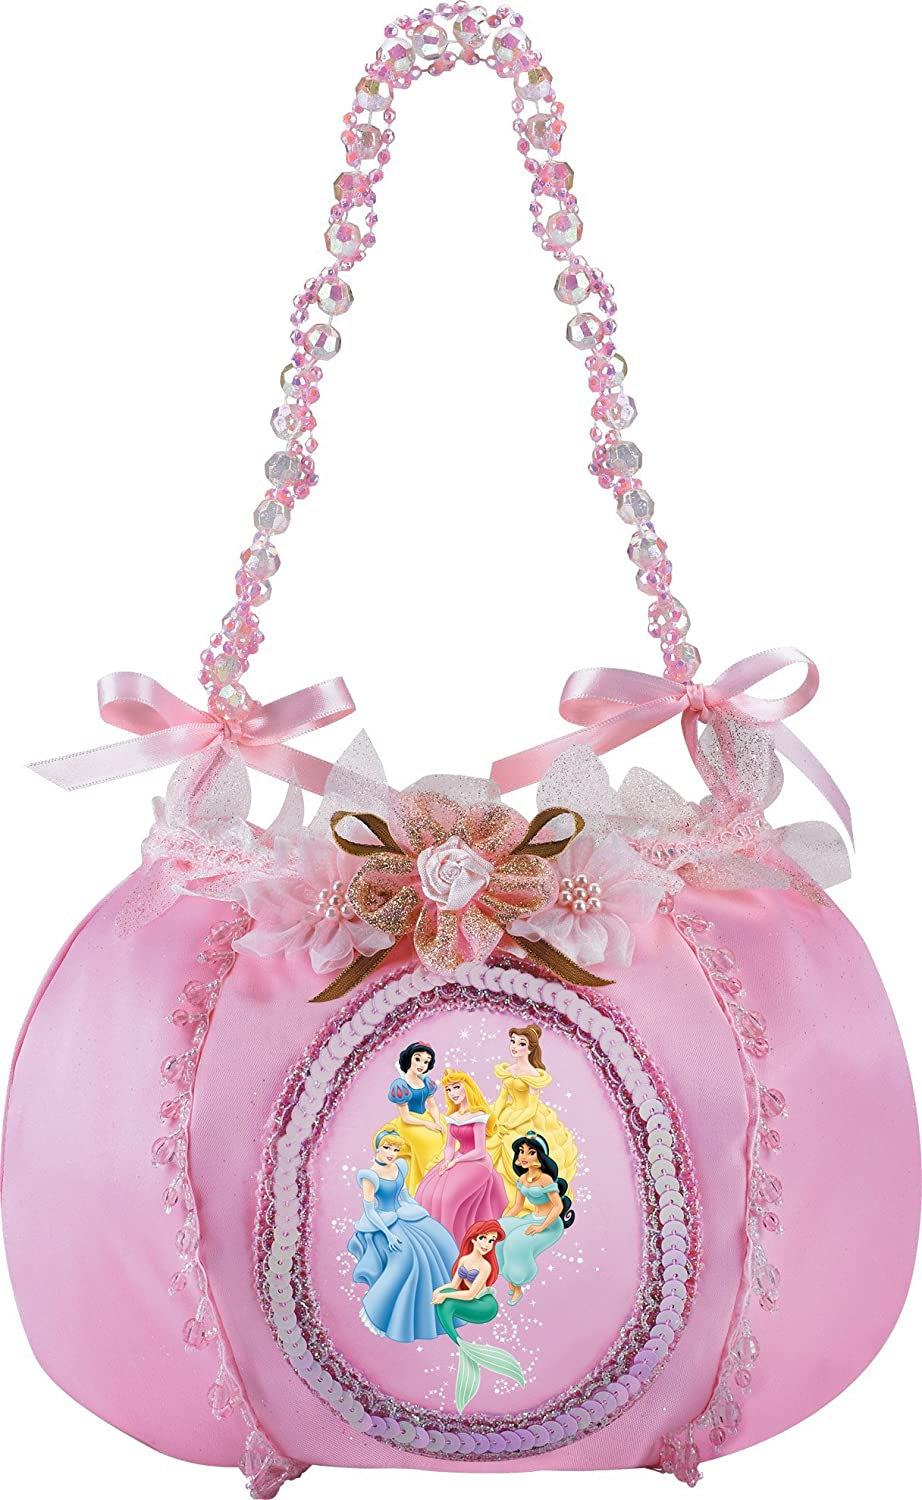 Disguise 178384 Disney Princess Soft Treat Bag Playset